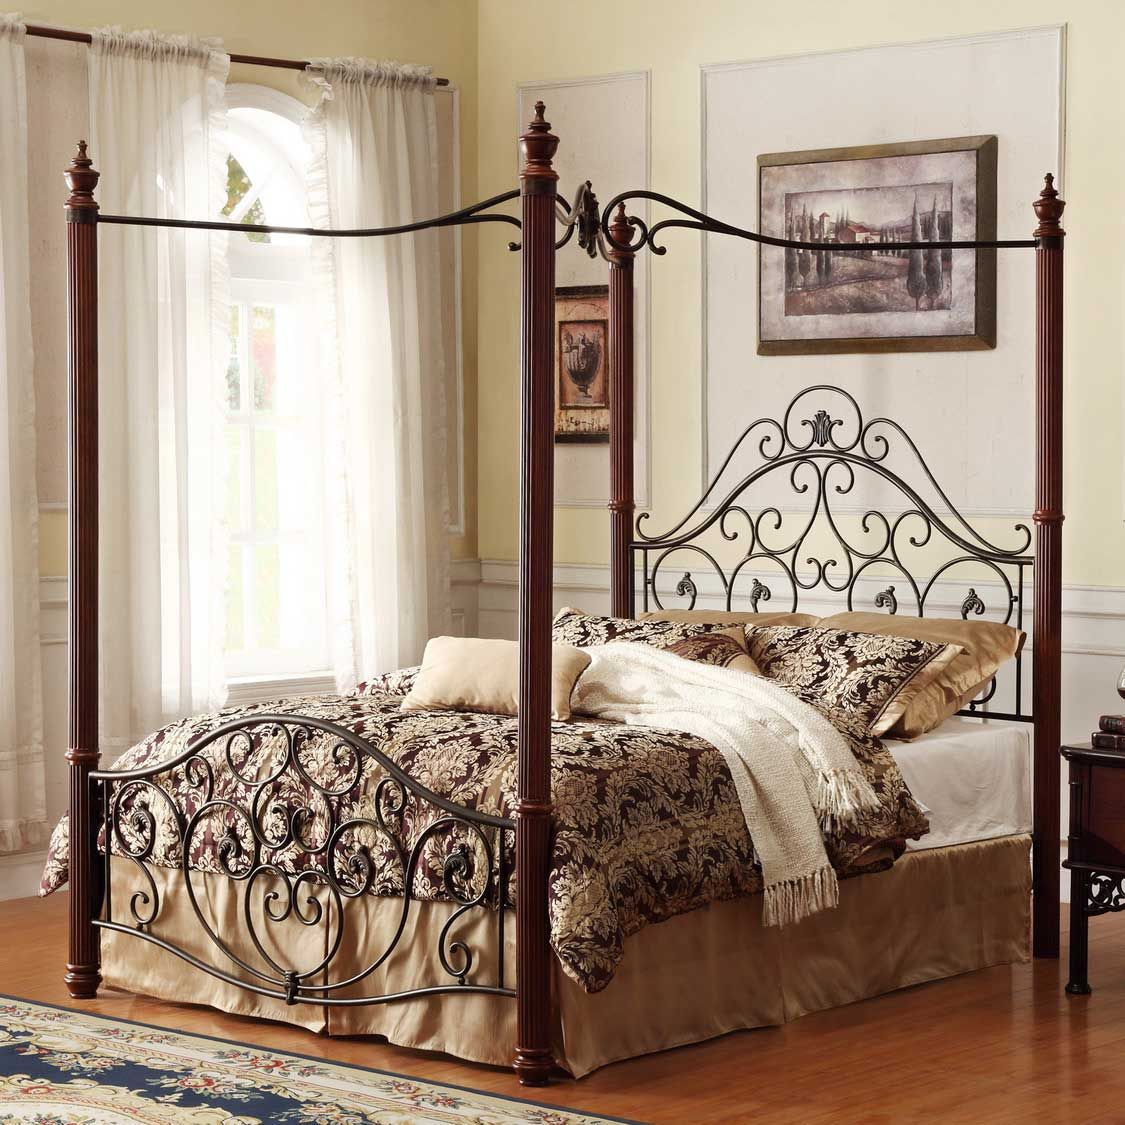 Elegant Princess Red Iron Bed With Canopy Also British